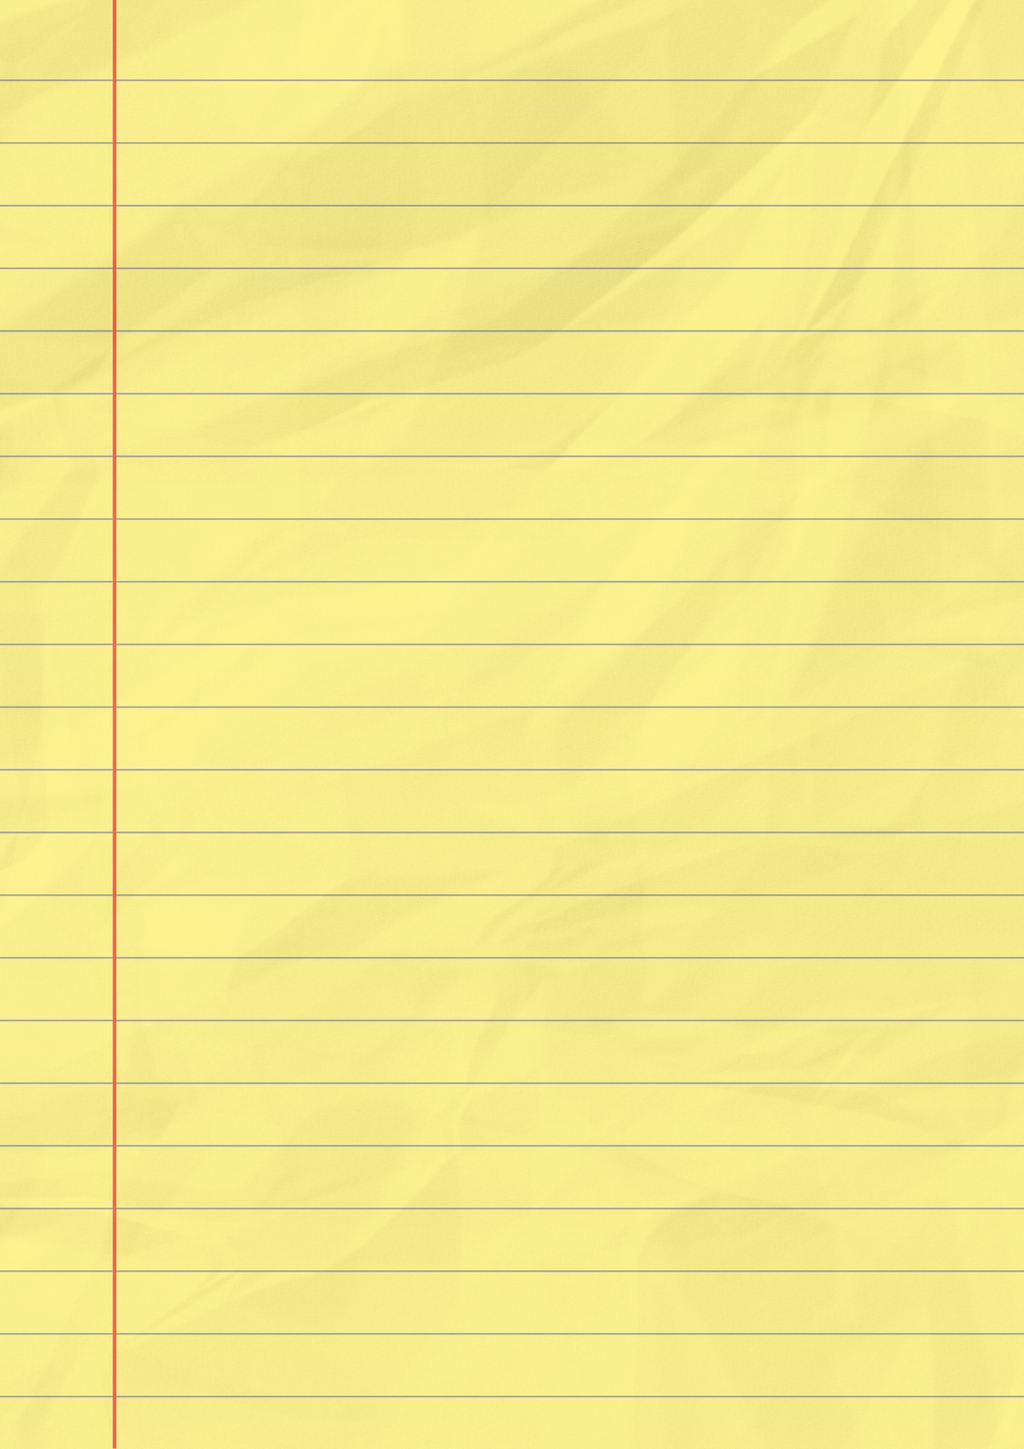 yellow lined paper by Andie200 on DeviantArt – Yellow Notebook Paper Background